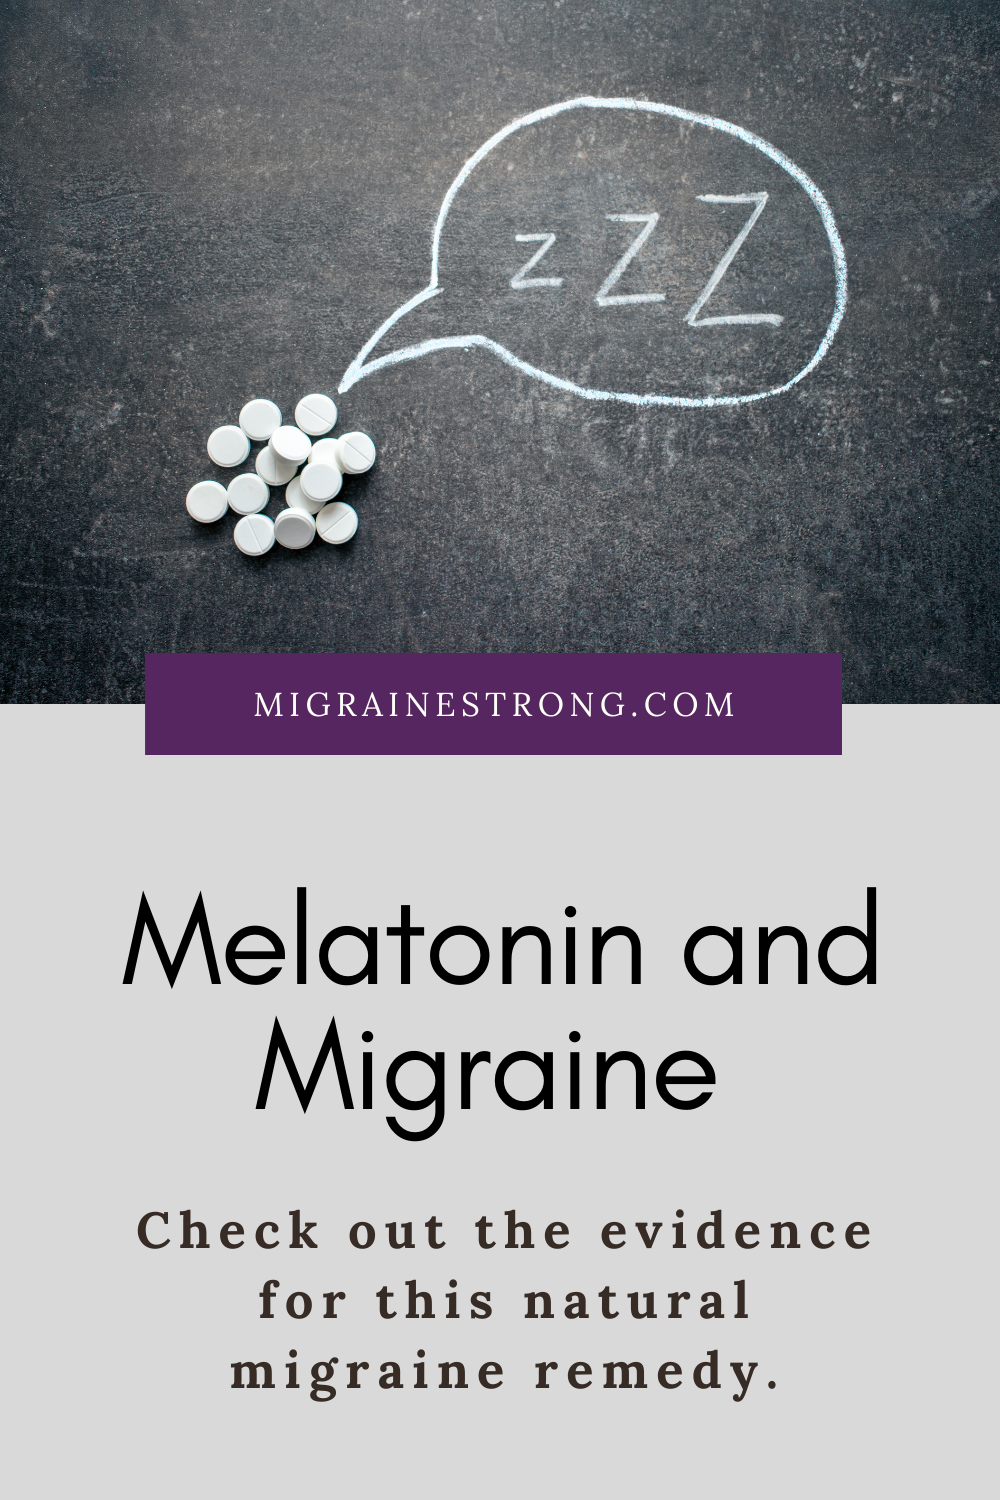 Melatonin for Migraine Relief -Does Science Support It?